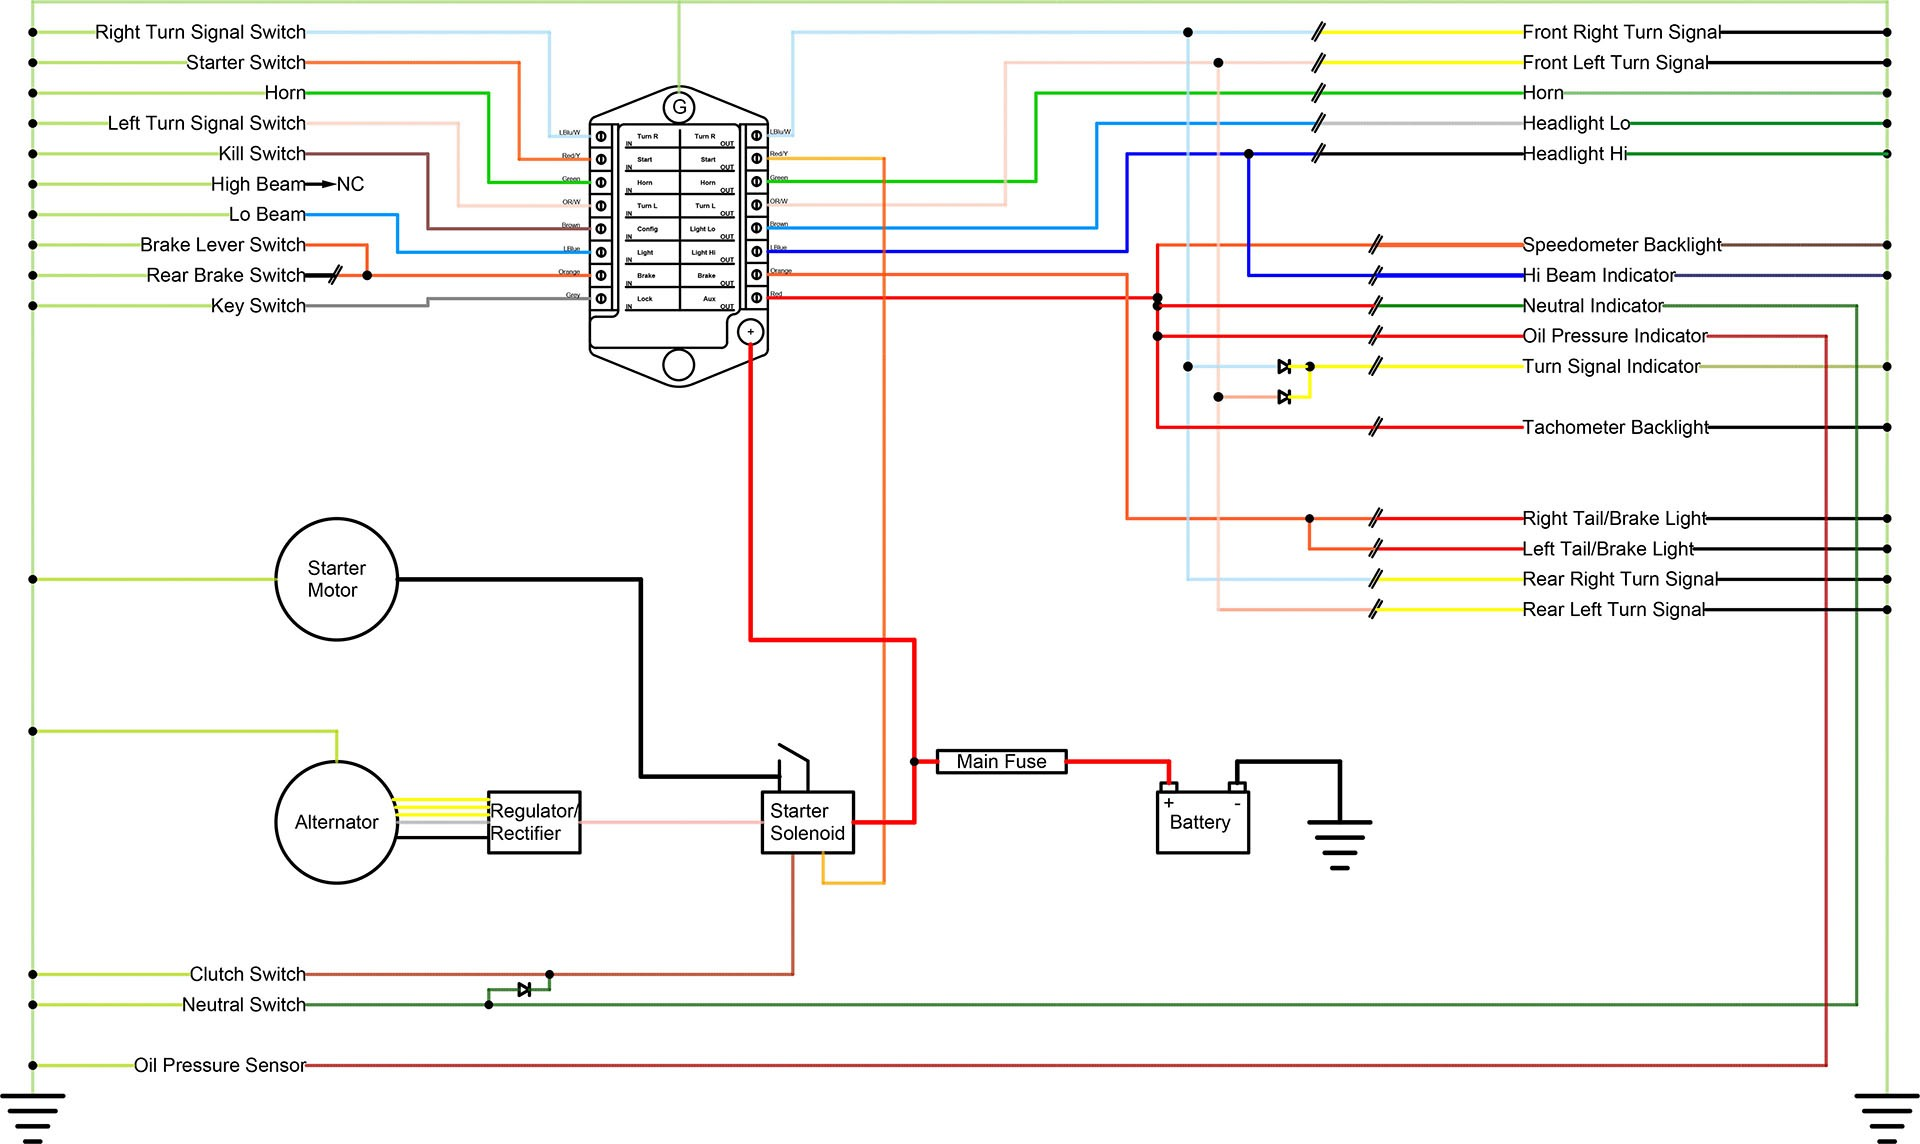 hight resolution of wiring diagram further honda cb 750 wiring diagram on cb www cb750 honda nighthawk 750 wiring